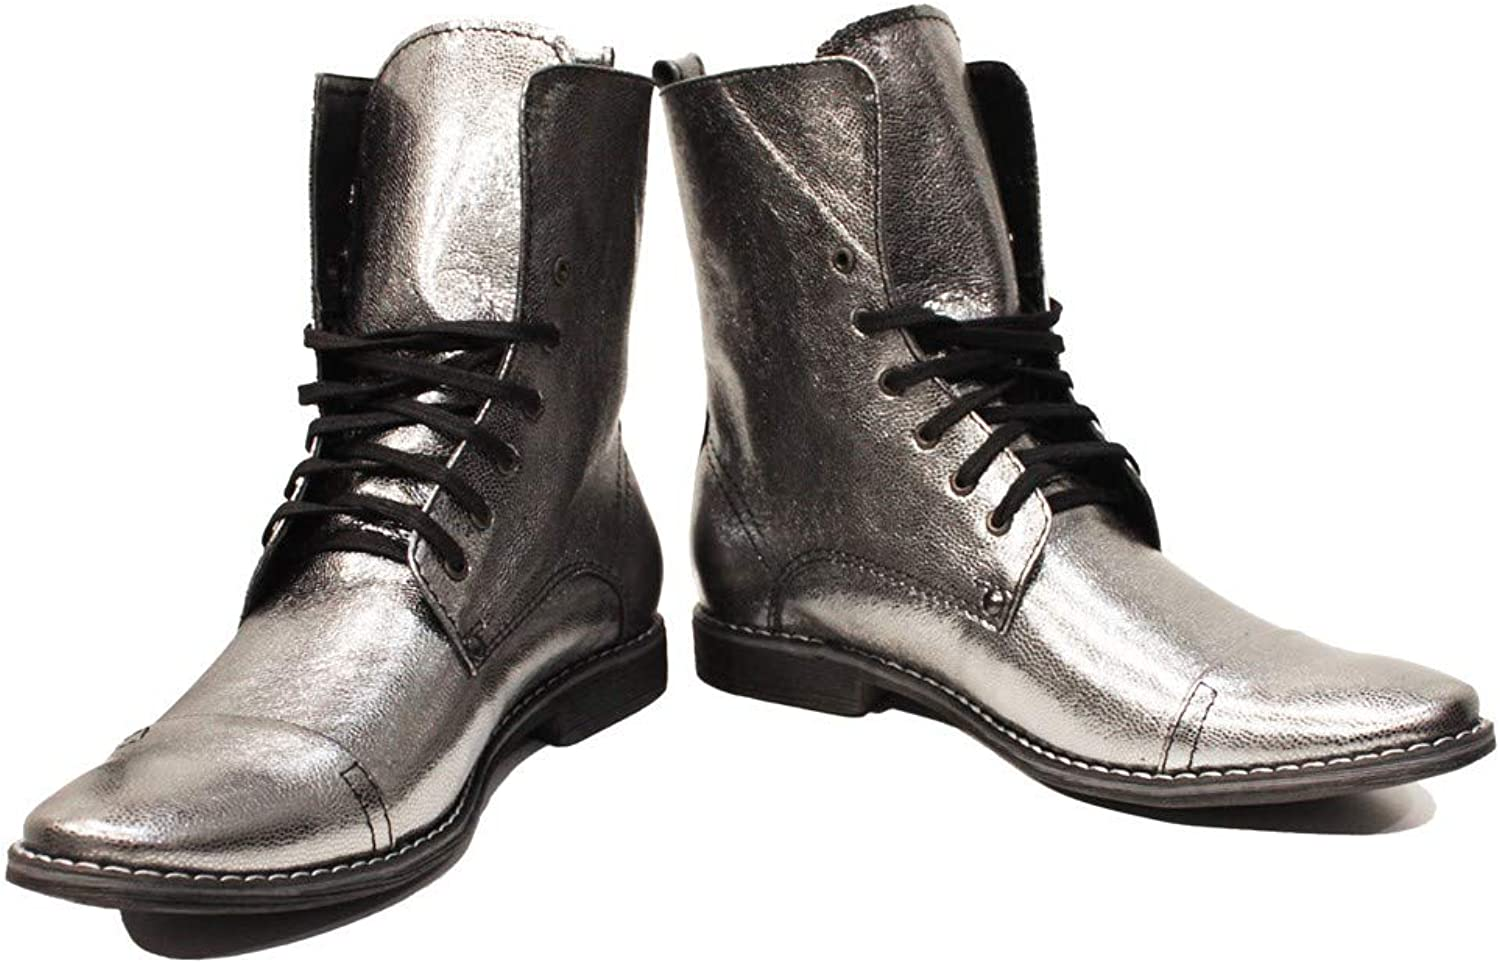 Peppeshoes Modello Silvero - Handmade Italian Leather Mens color Silver High Boots - Goatskin Smooth Leather - Lace-Up